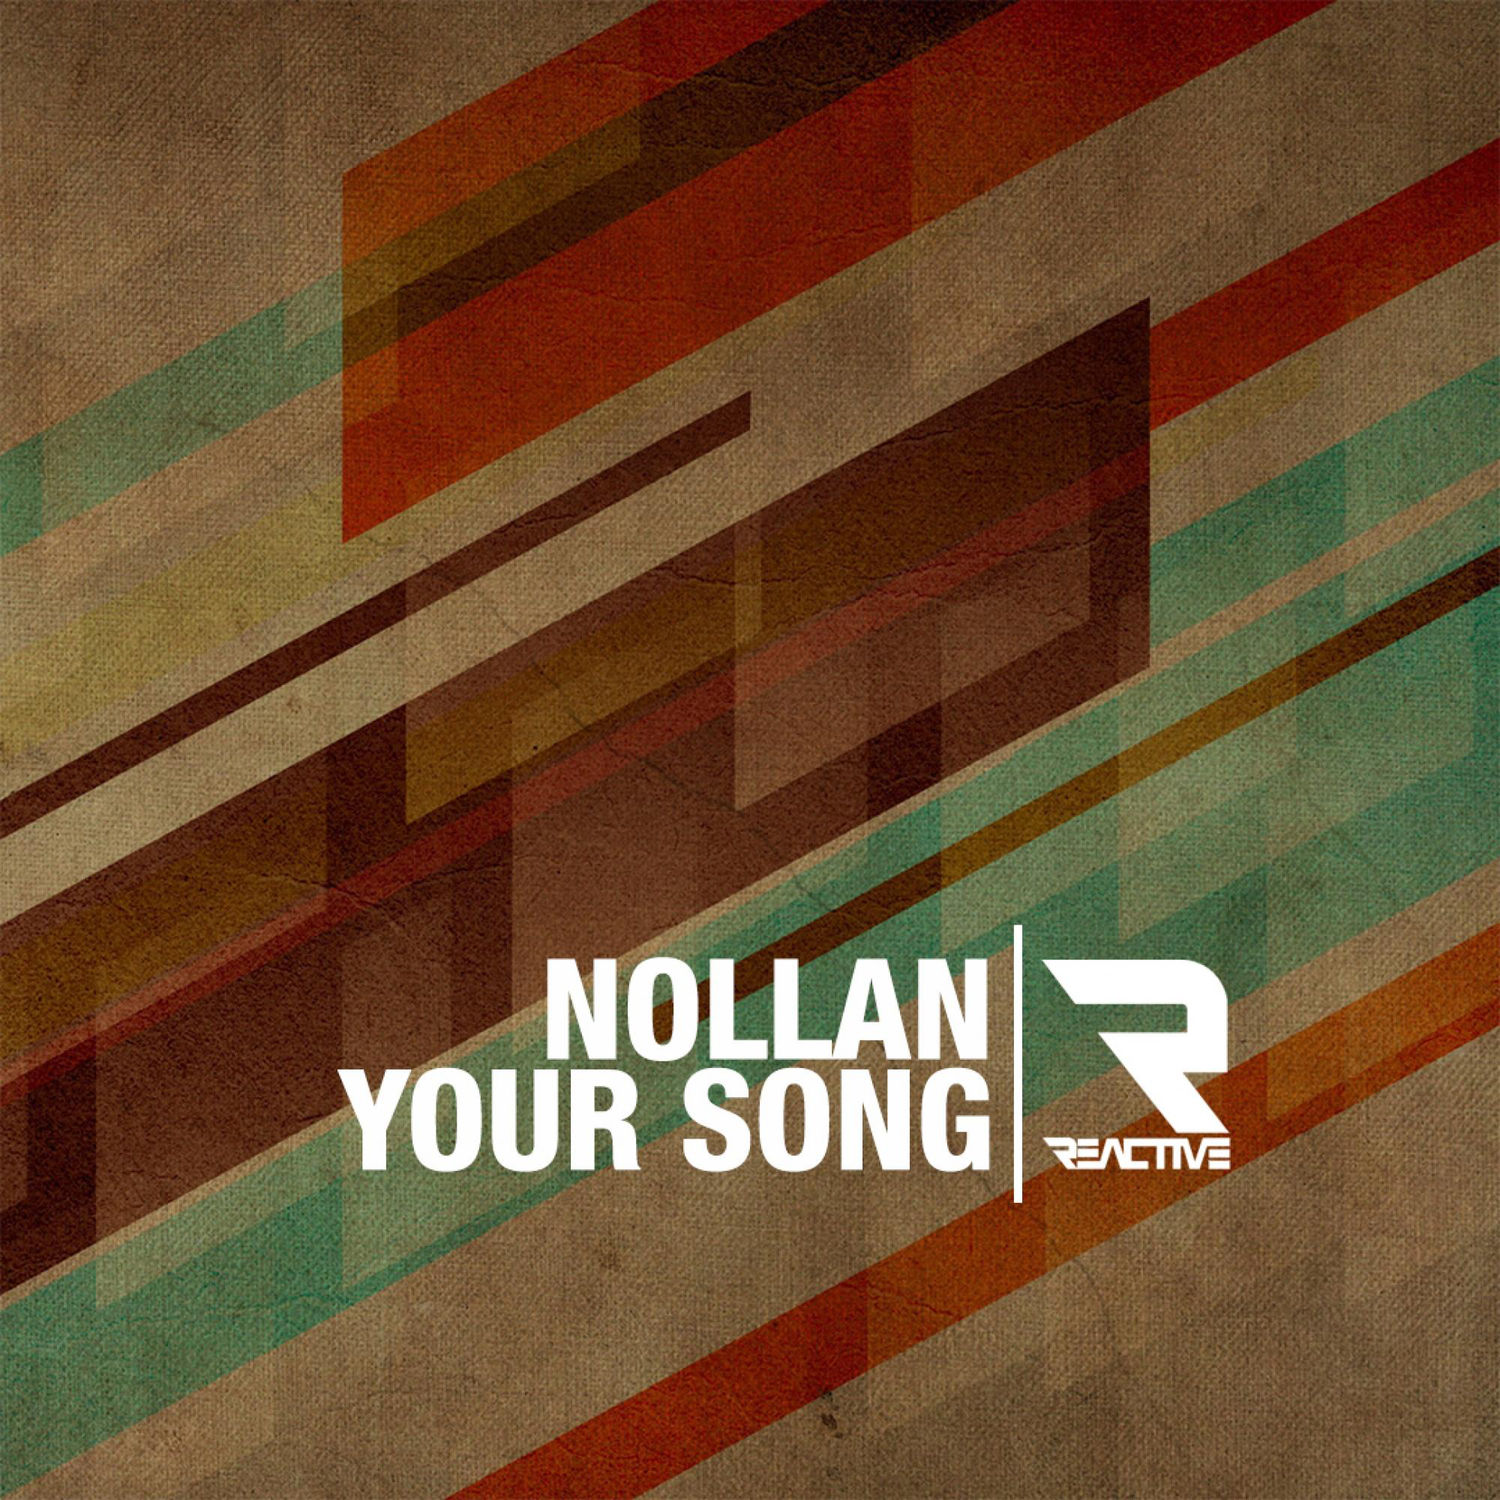 Nollan - Your Song [811868 861395]